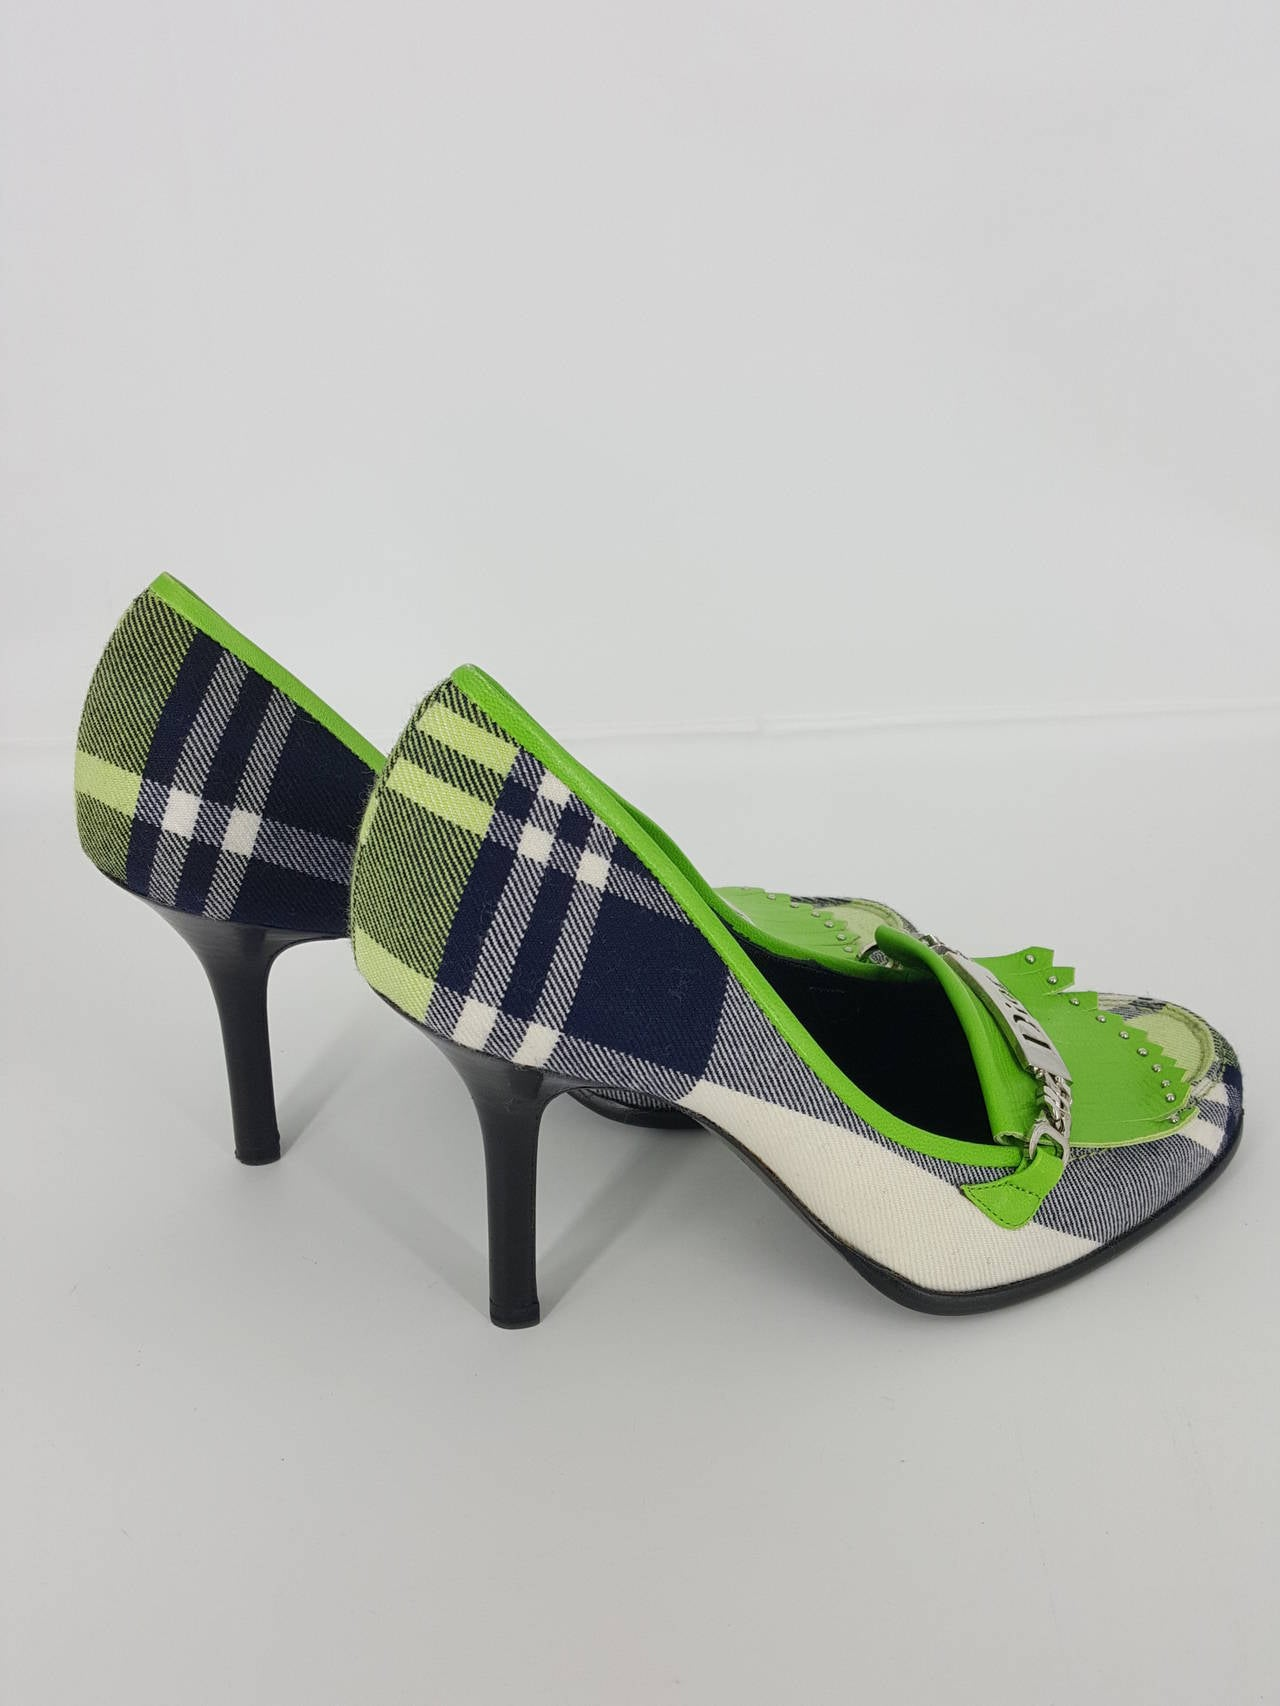 Offered for sale are these new never worn Dior pumps in lime green, navy and white plaid flannel.  They are darling.  The large silver Dior charm on the front and the fringed lime green leather dive it a Scottish flavor.  Great with jeans or  a